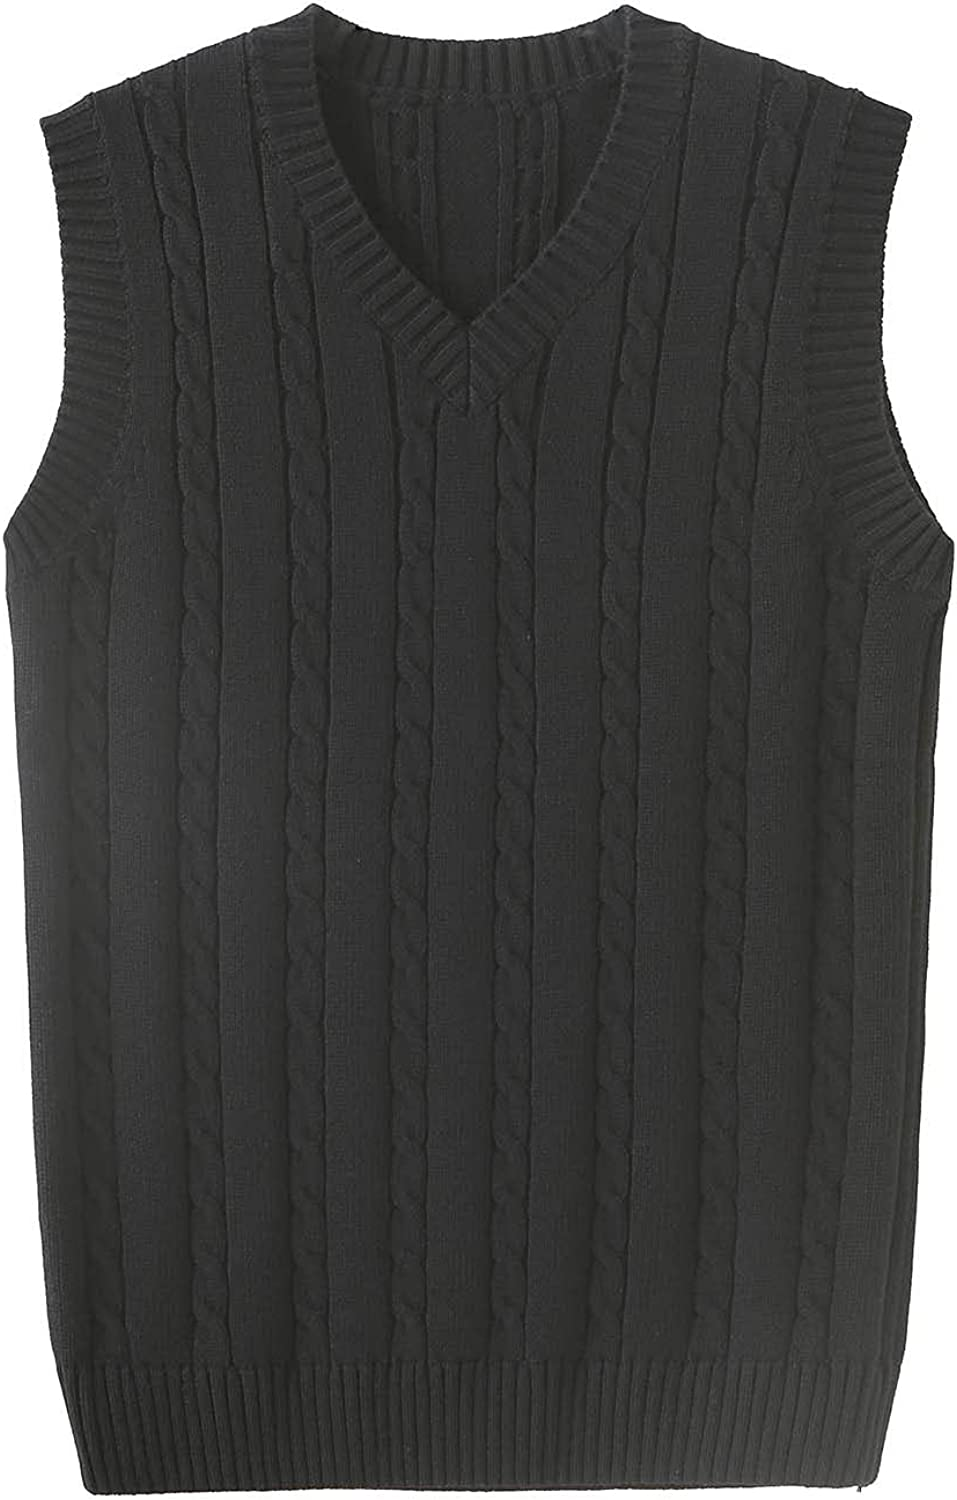 In a popularity Ustiko OFFicial shop Sweater Vest for Unif Men School Casual